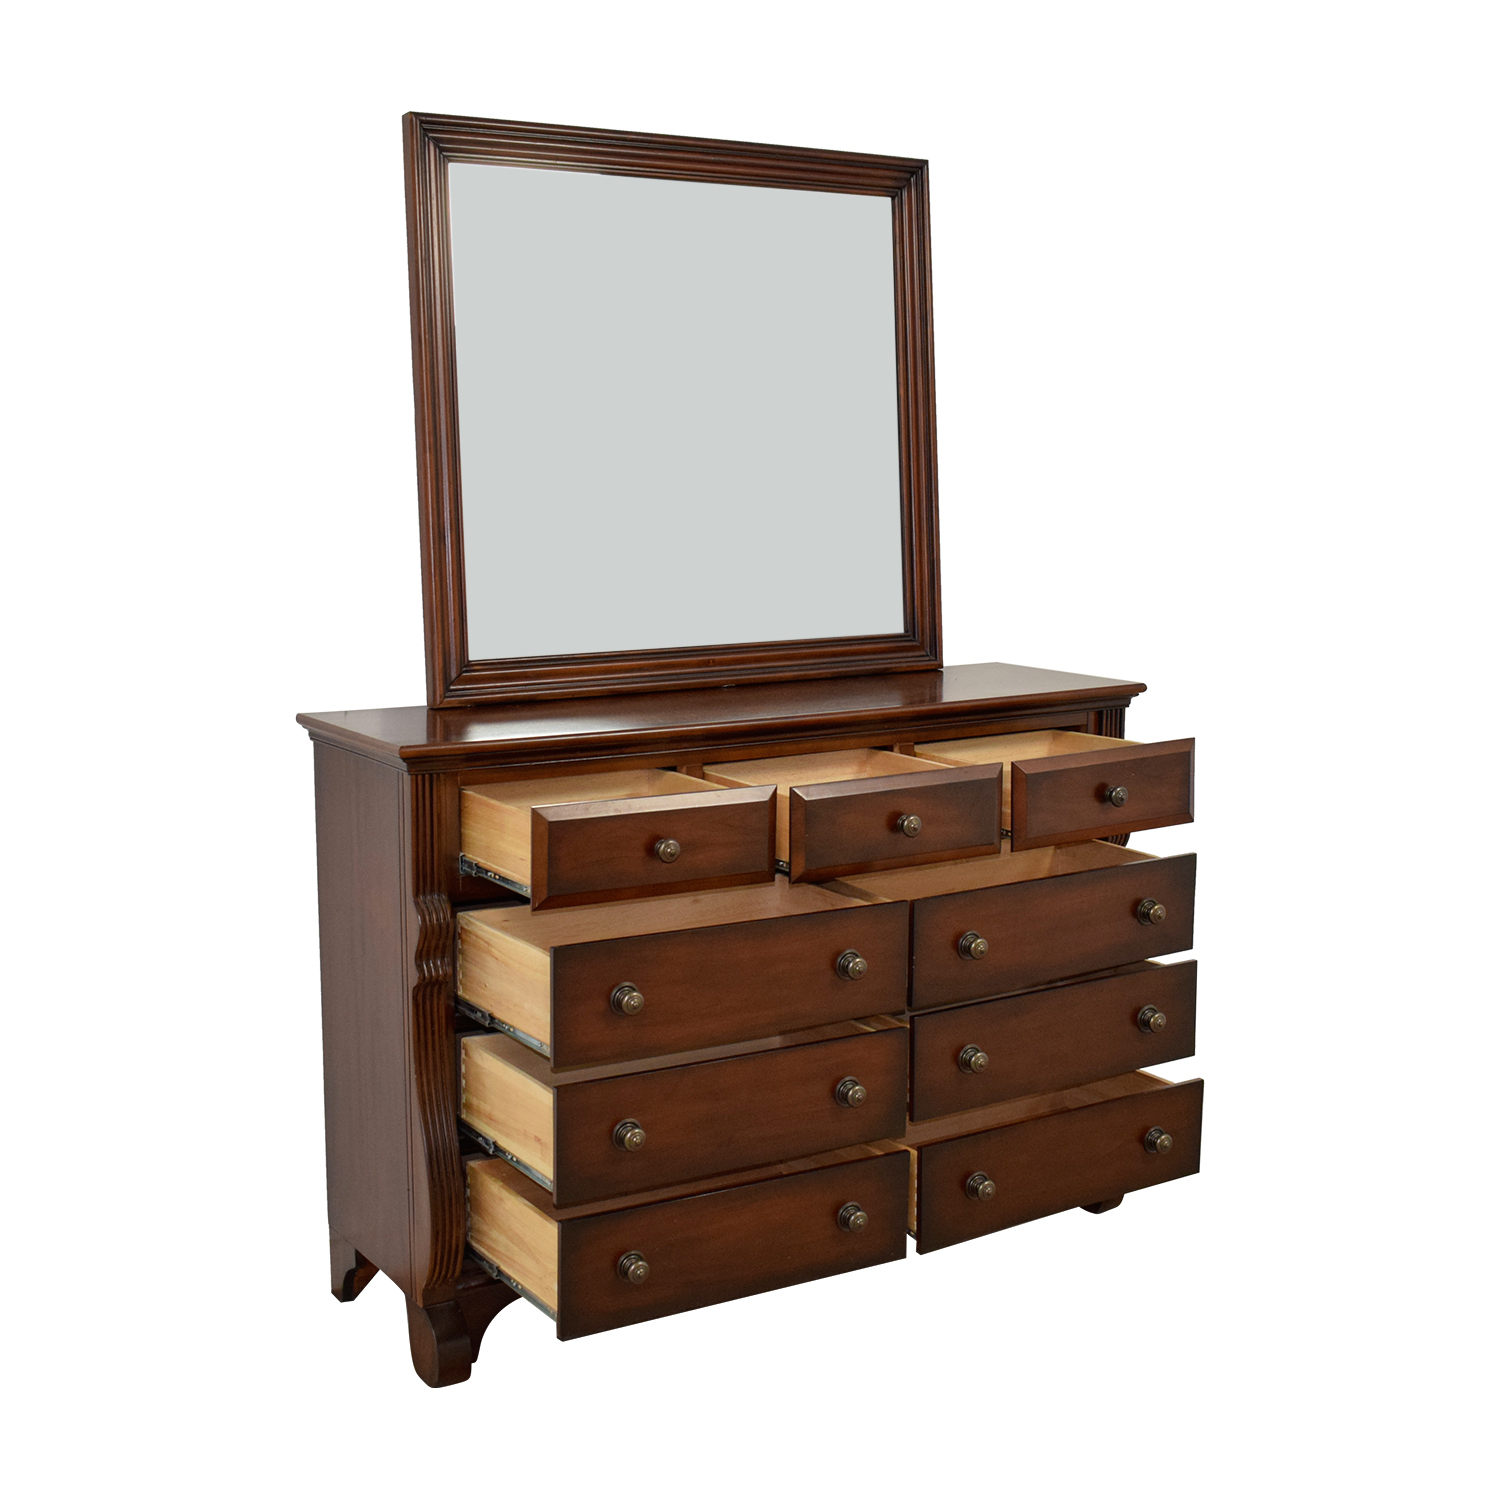 Bob's Furniture Bob's Furniture Nine-Drawer Dresser with Mirror price